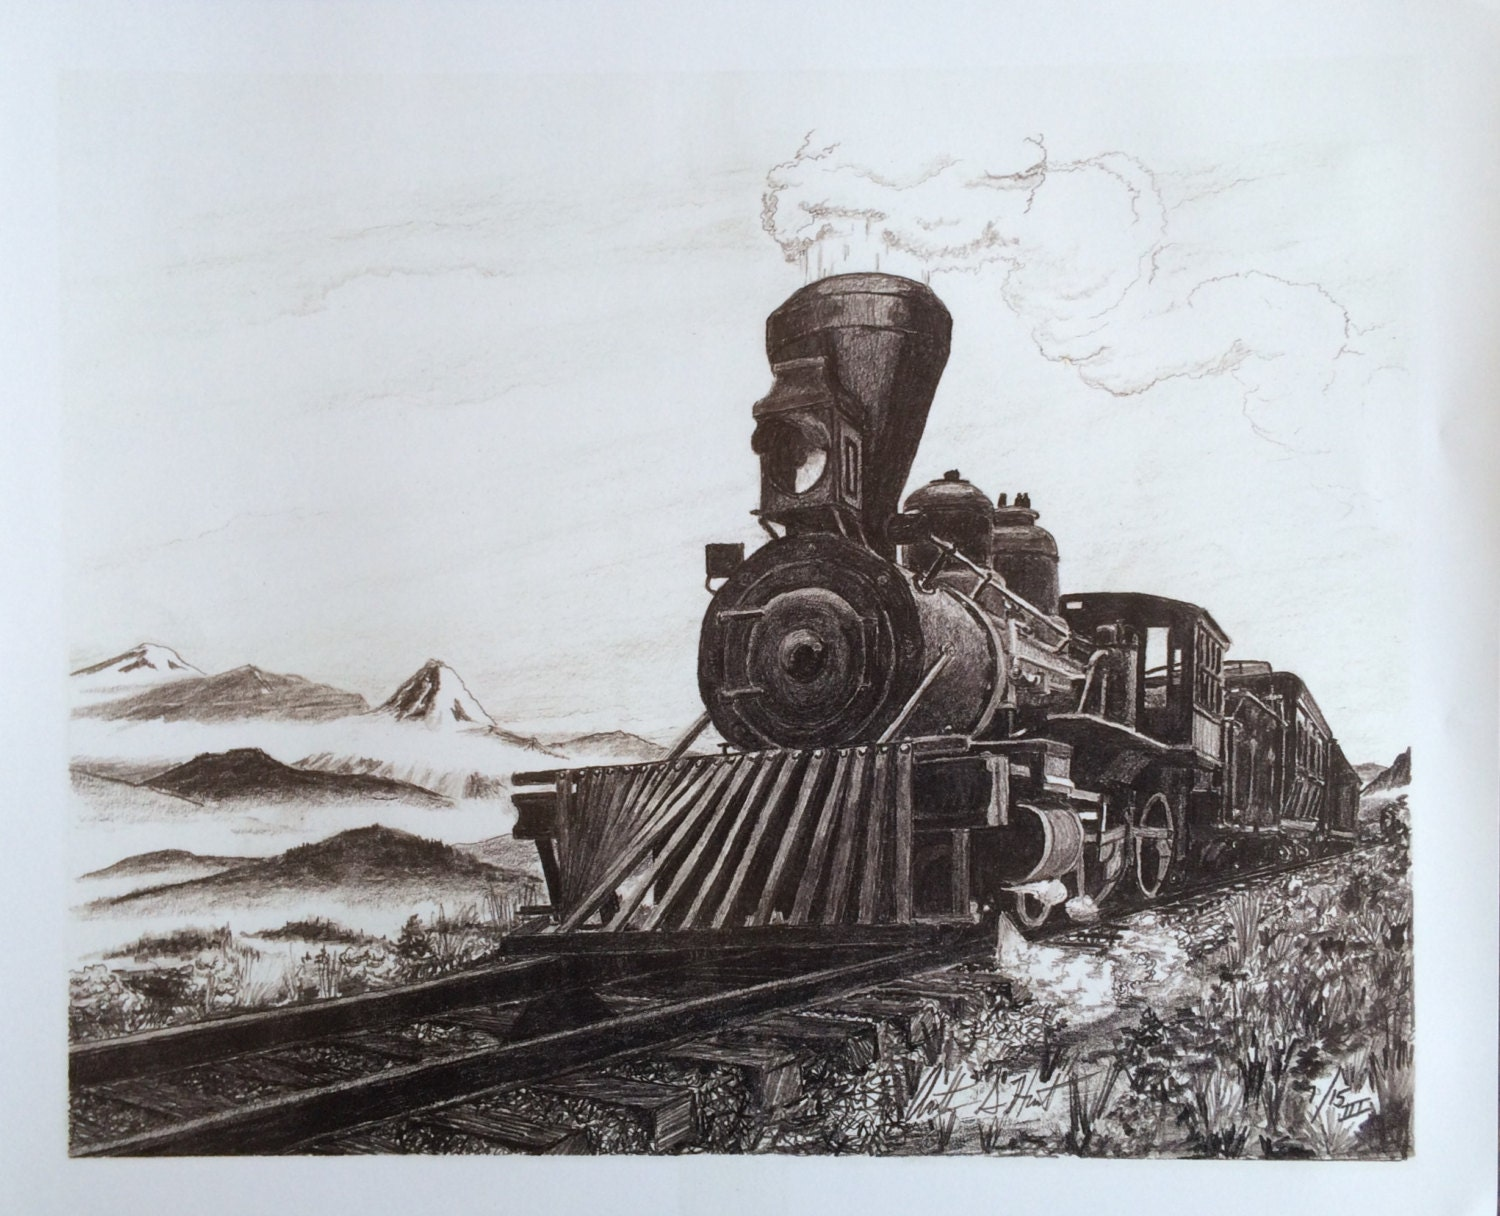 Iron Horse III - 14x17 Digital print of original steam locomotive